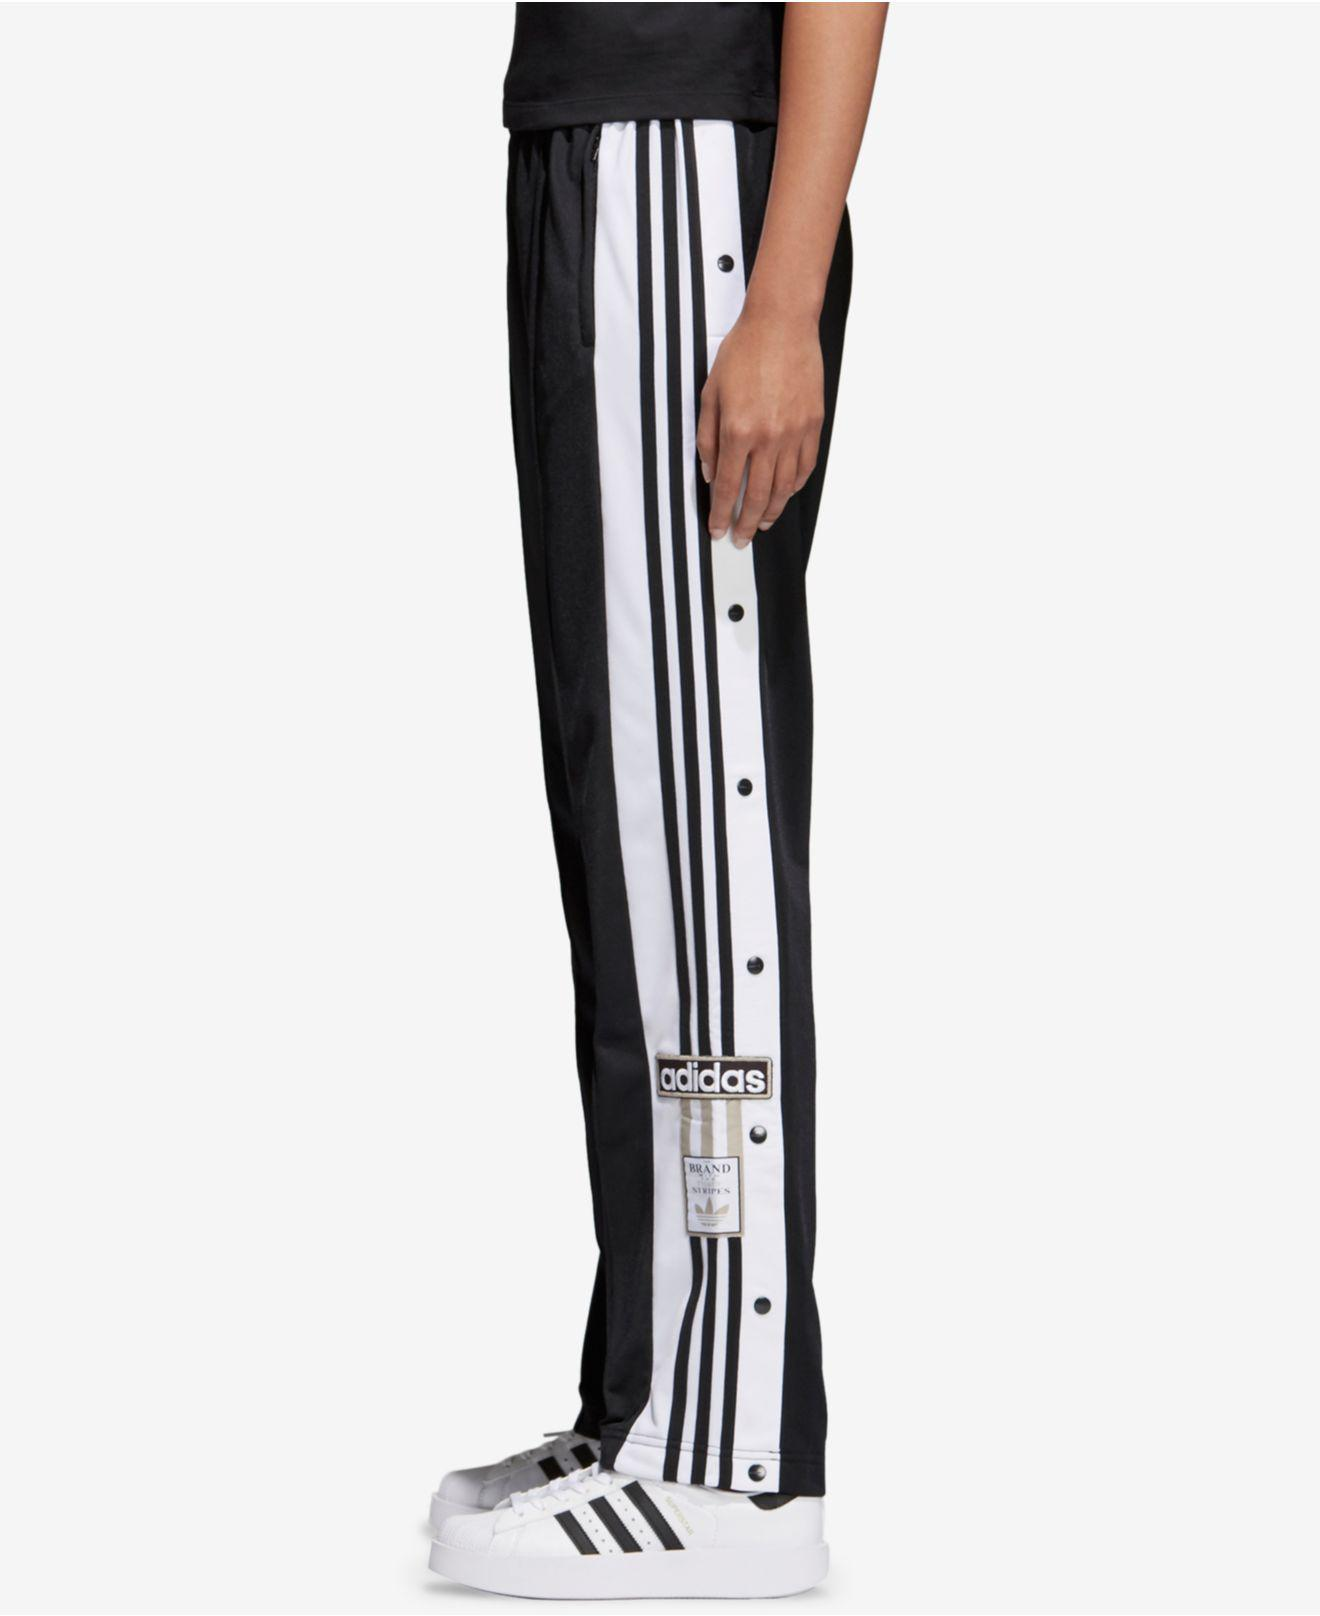 95bd99f86d77 Lyst - adidas Originals Originals Adibreak Track Pants in Black ...